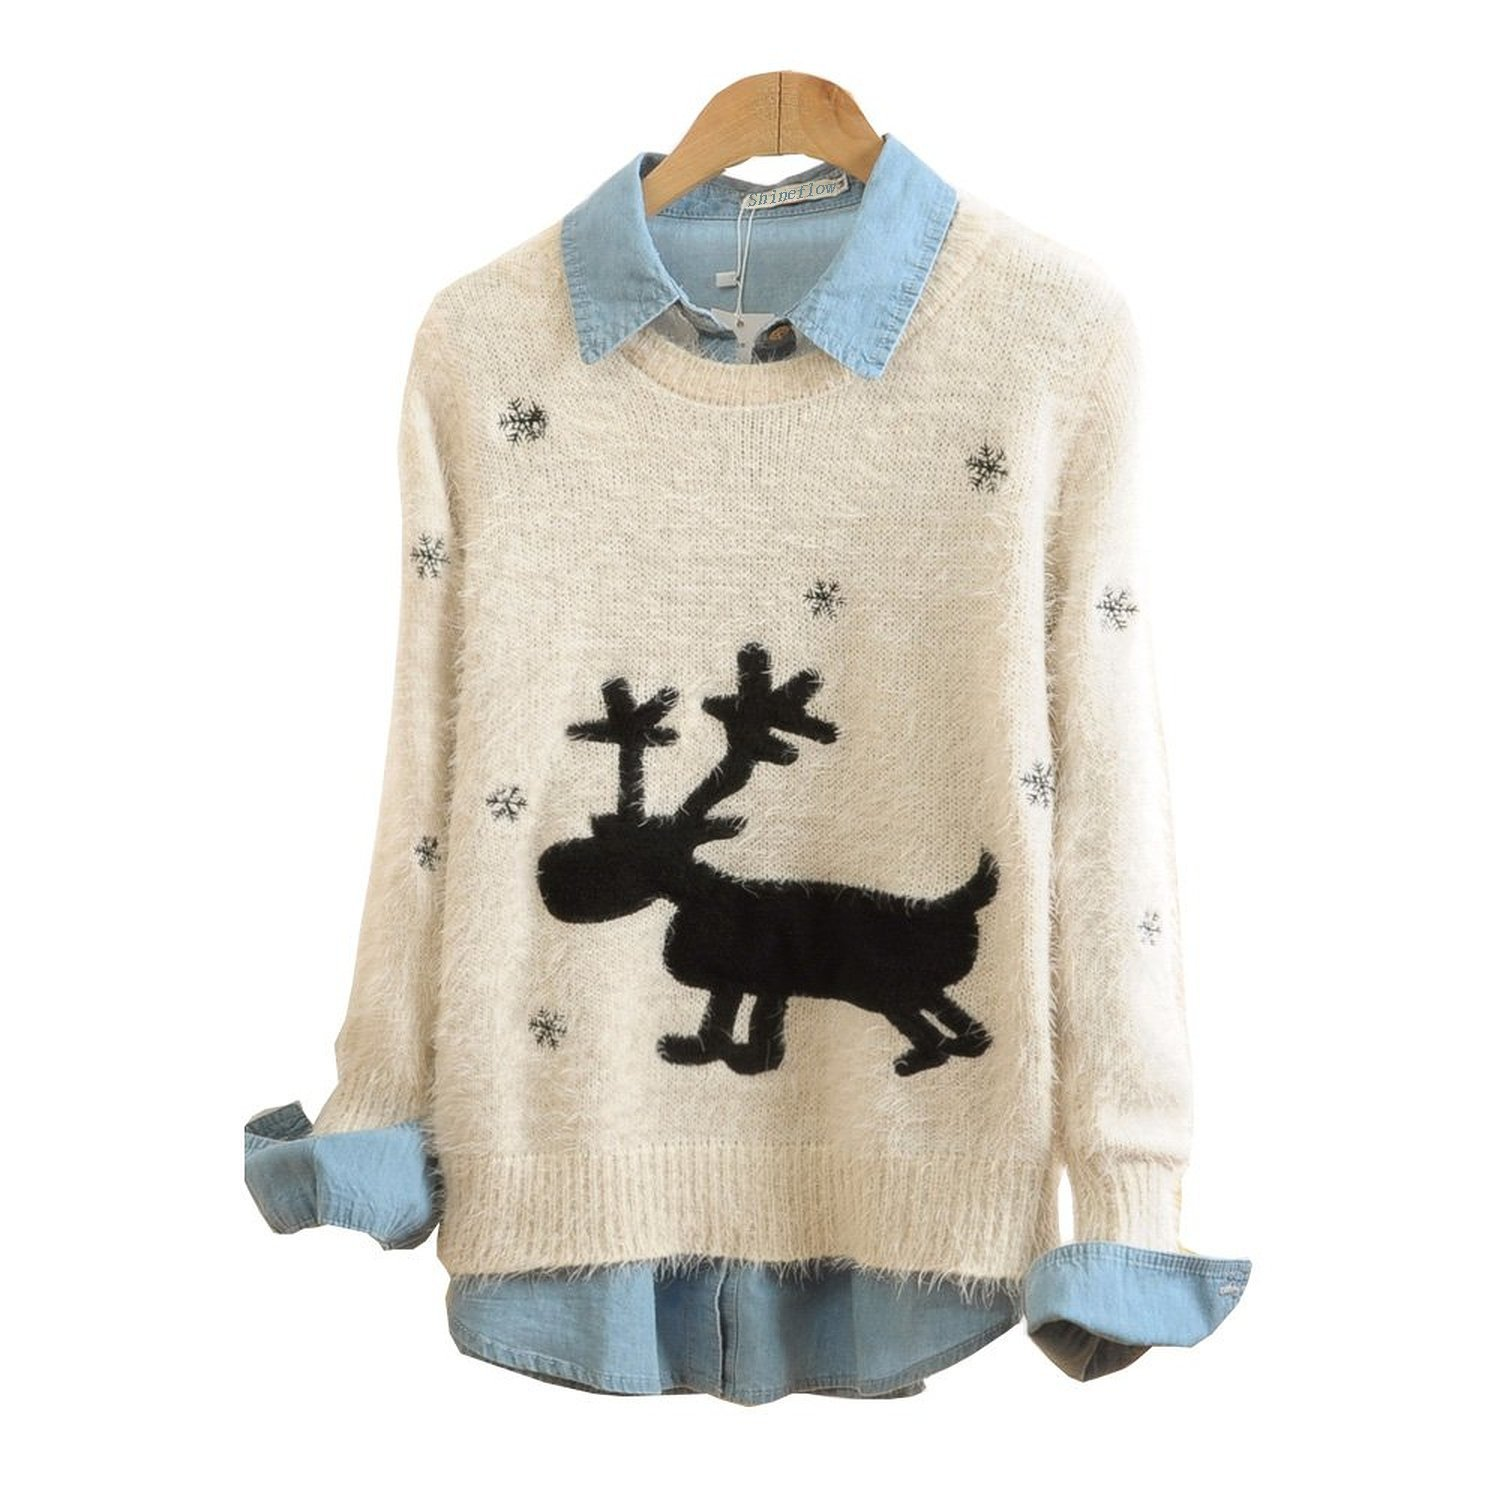 Shineflow Christmas Sweater Rudolph Reindeer in Snow Sweatshirt Limited Edition 2014